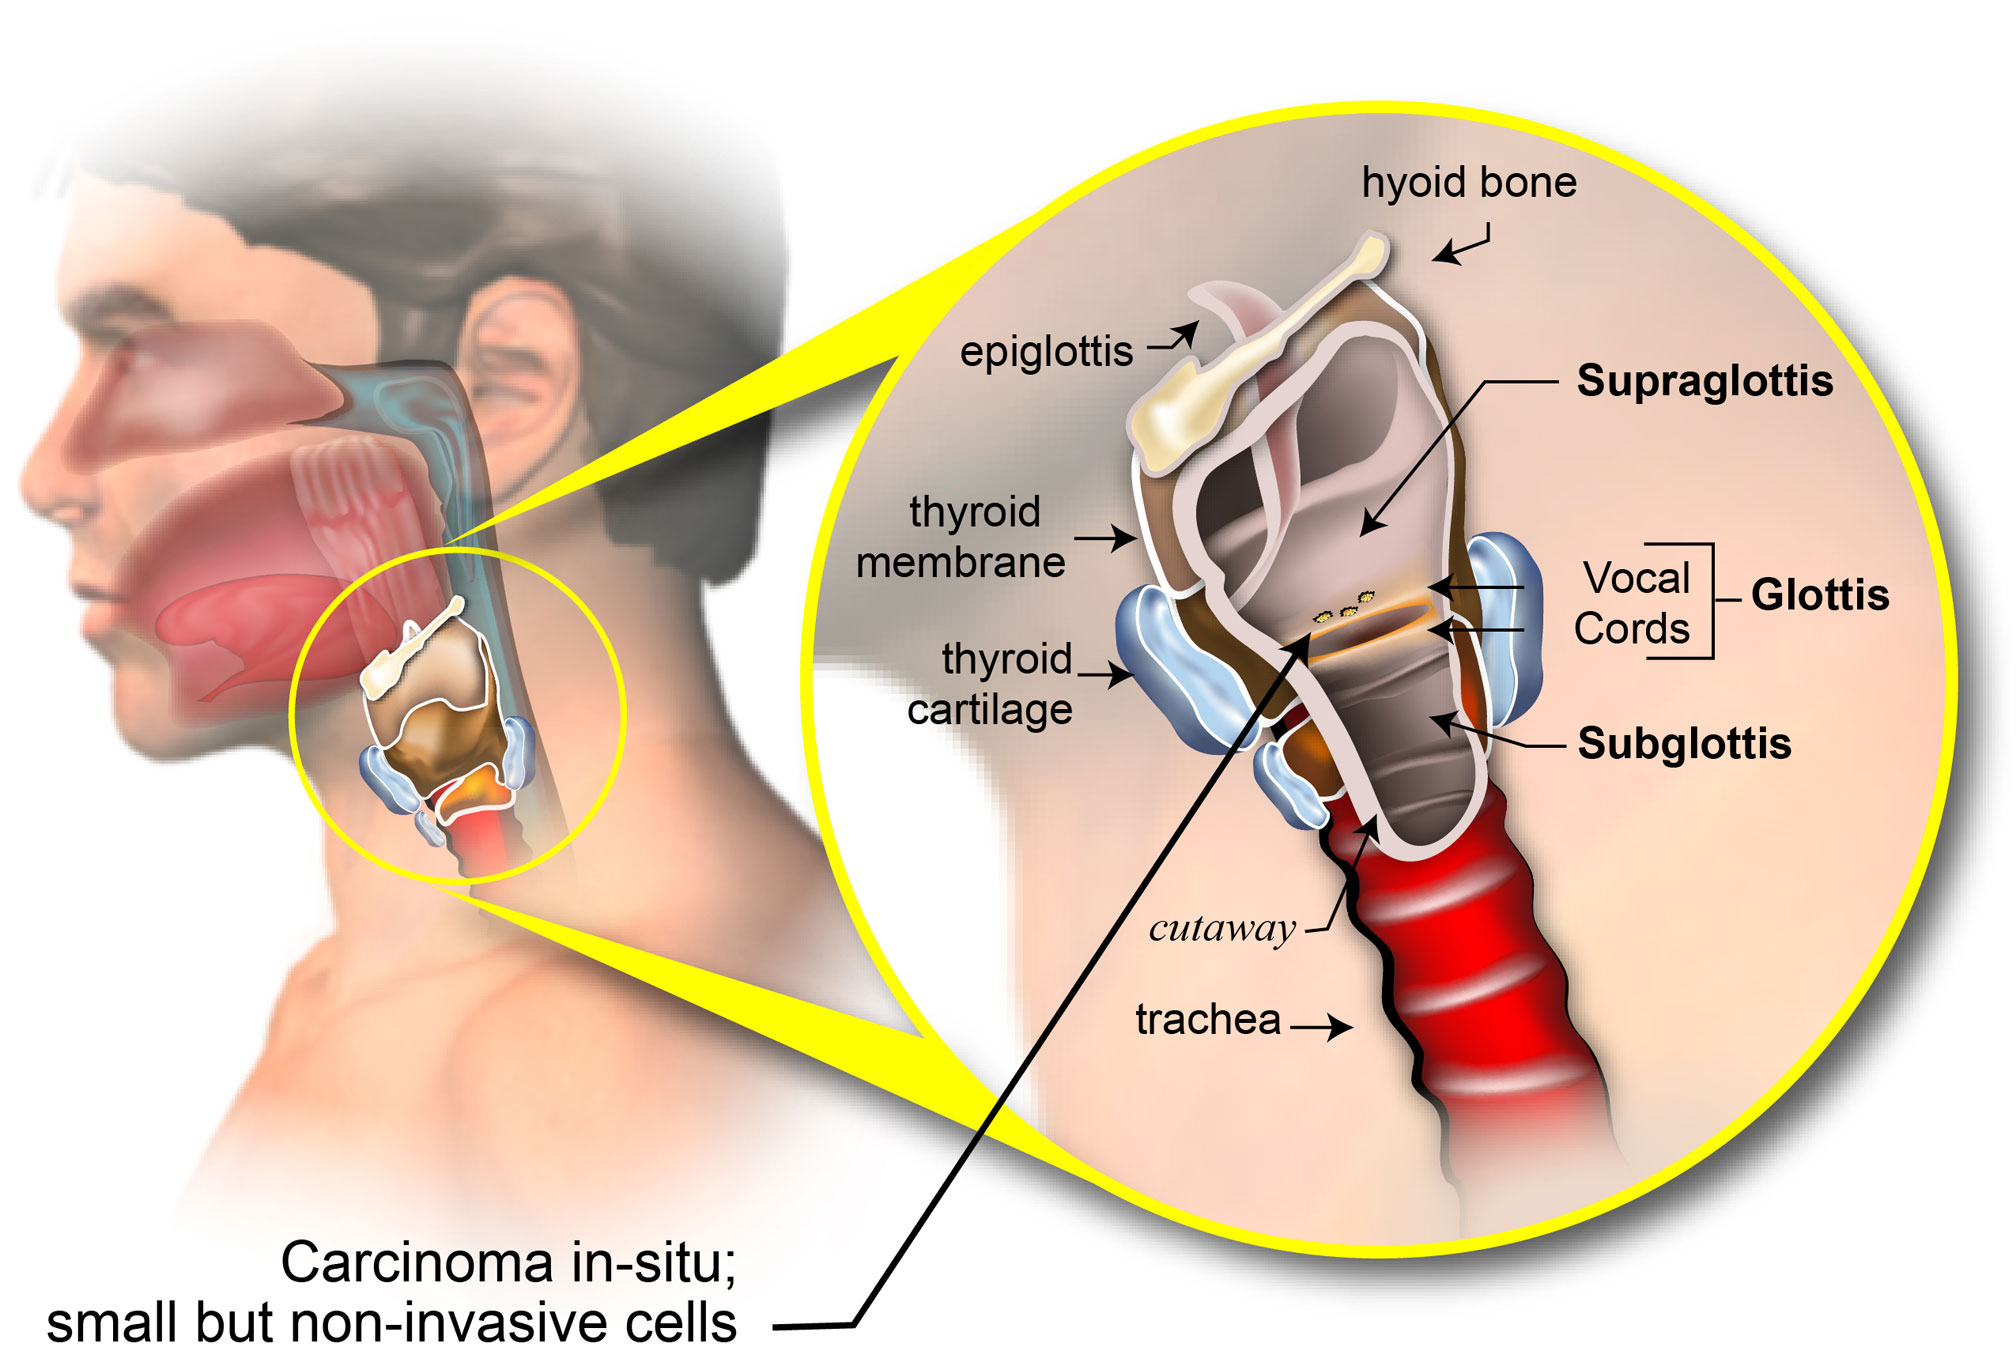 can hpv throat cancer spread to lungs